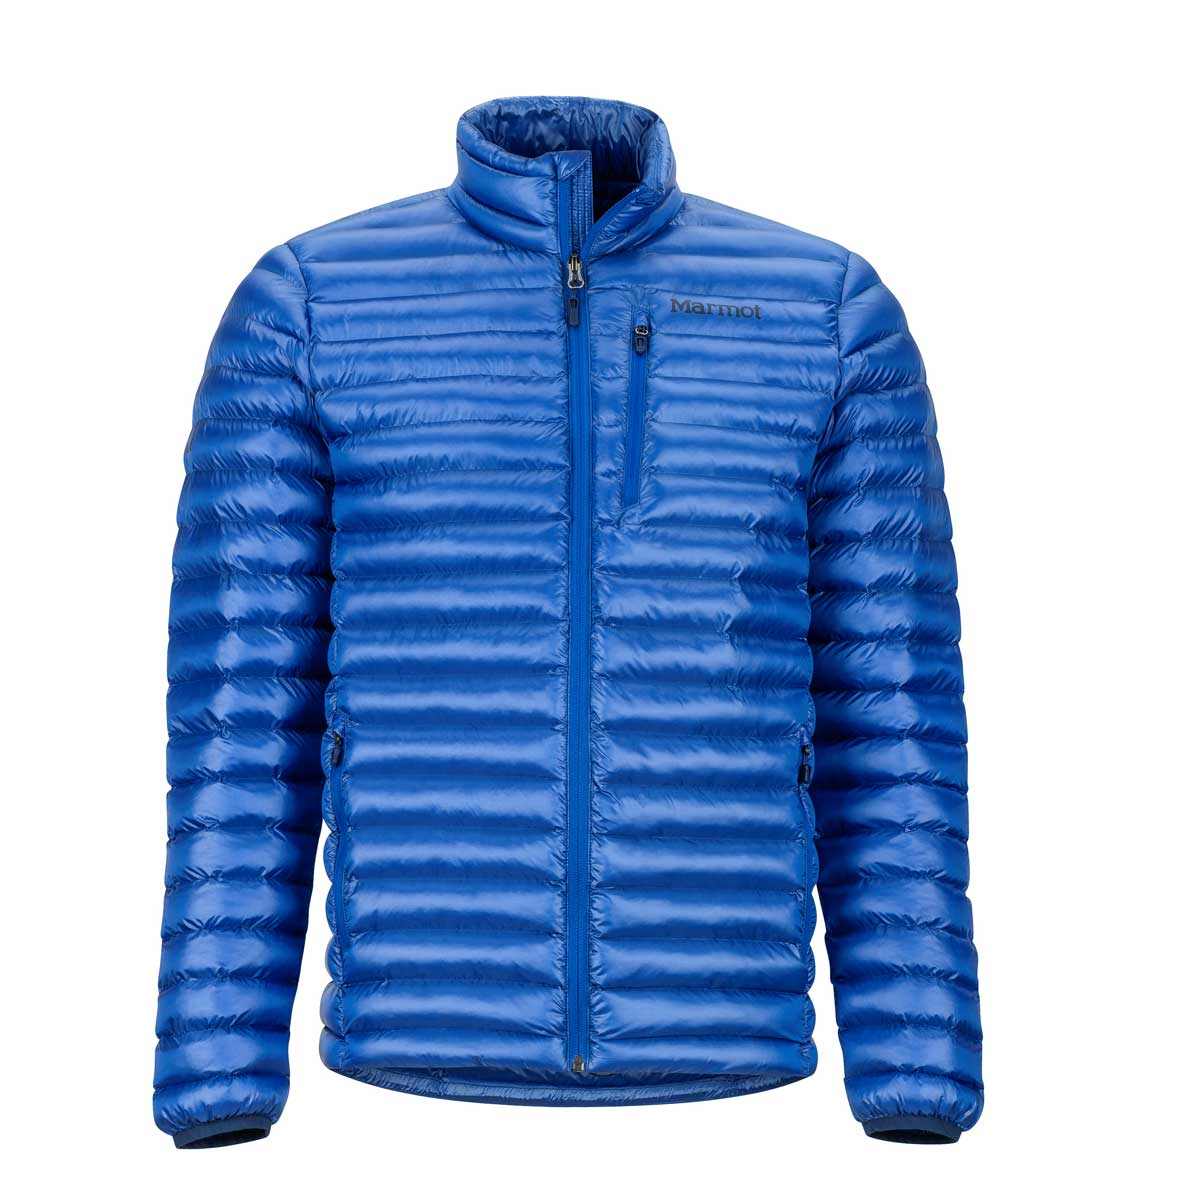 Marmot Men's Avant Featherless Jacket in Surf